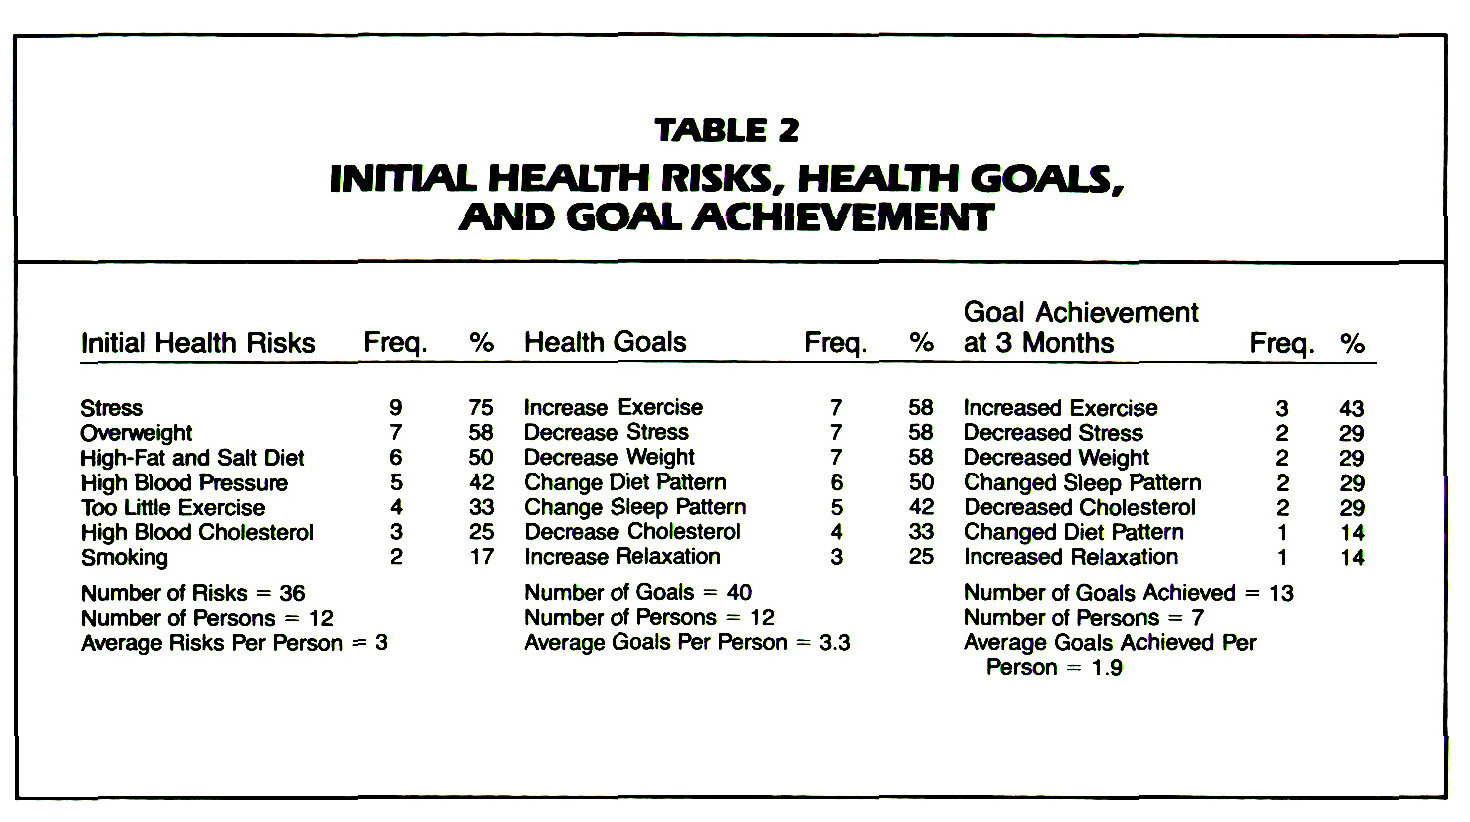 TABLE 2INITIAL HEALTH RISKS, HEALTH GOALS, AND GOAL ACHIEVEMENT